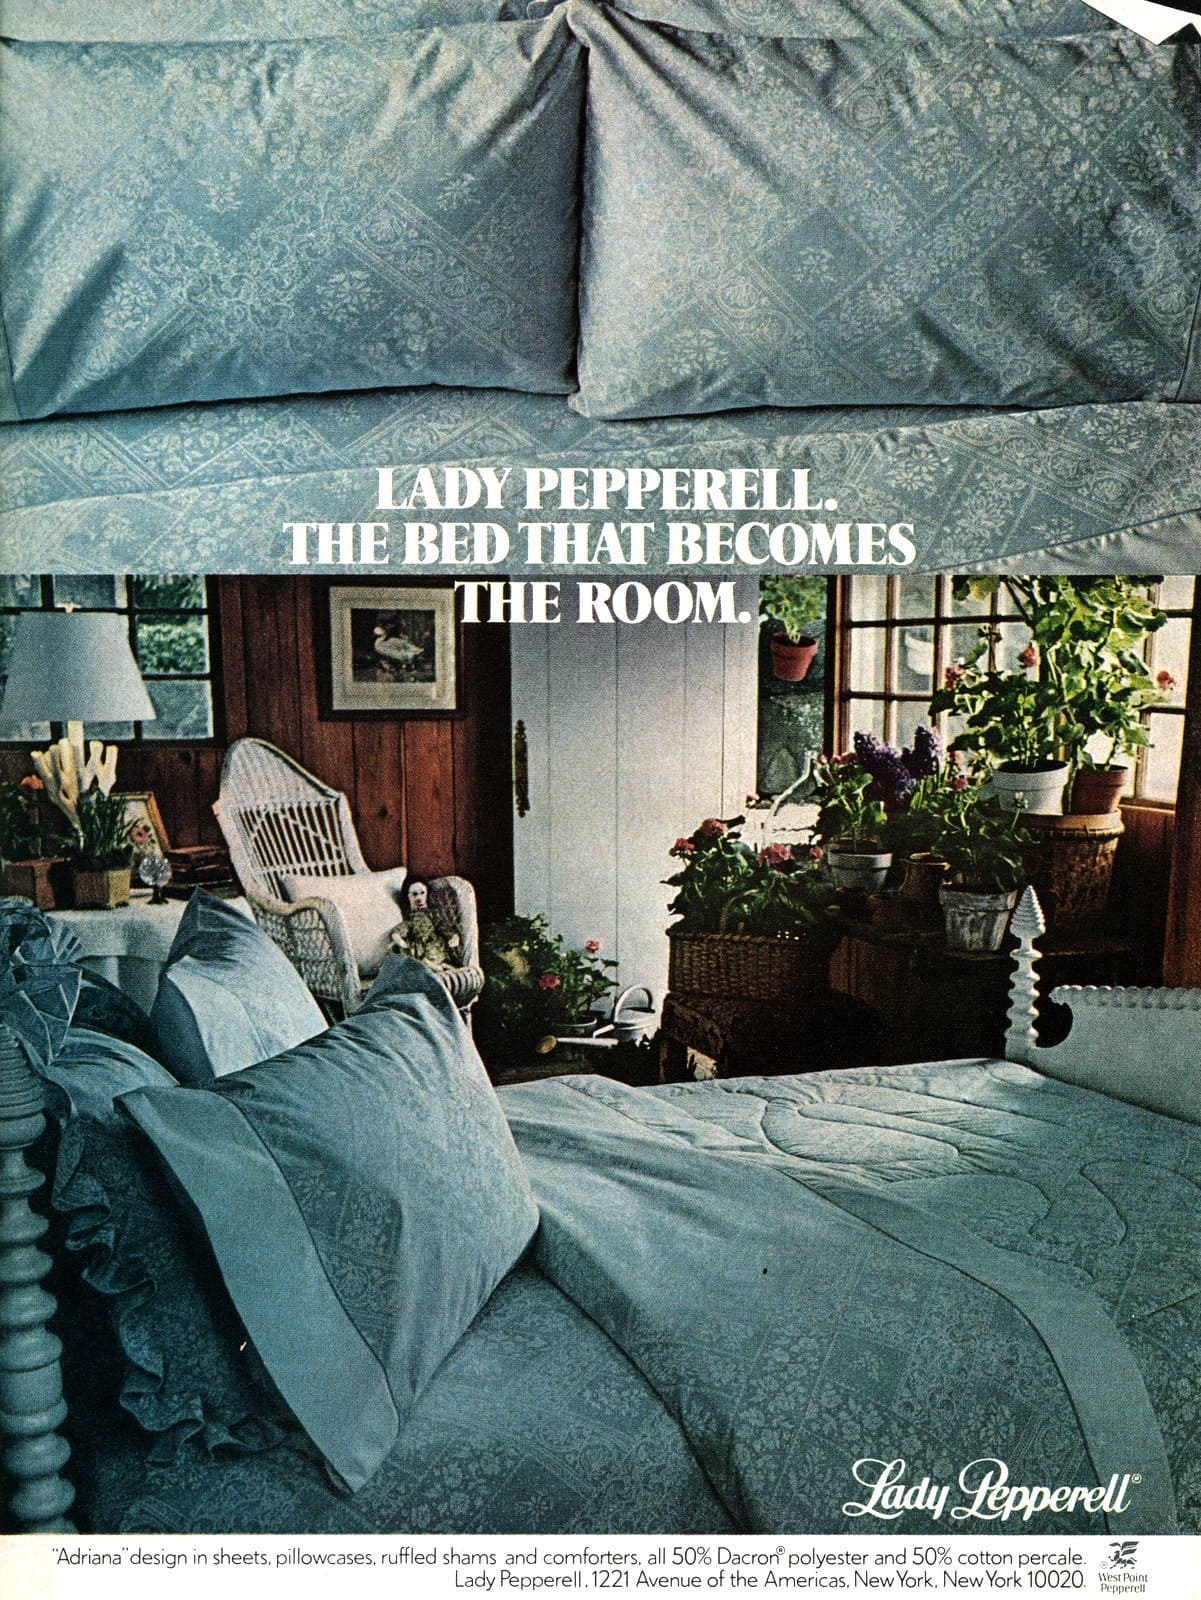 Vintage Lady Pepperell sheets and bedding in Adriana design (1979)